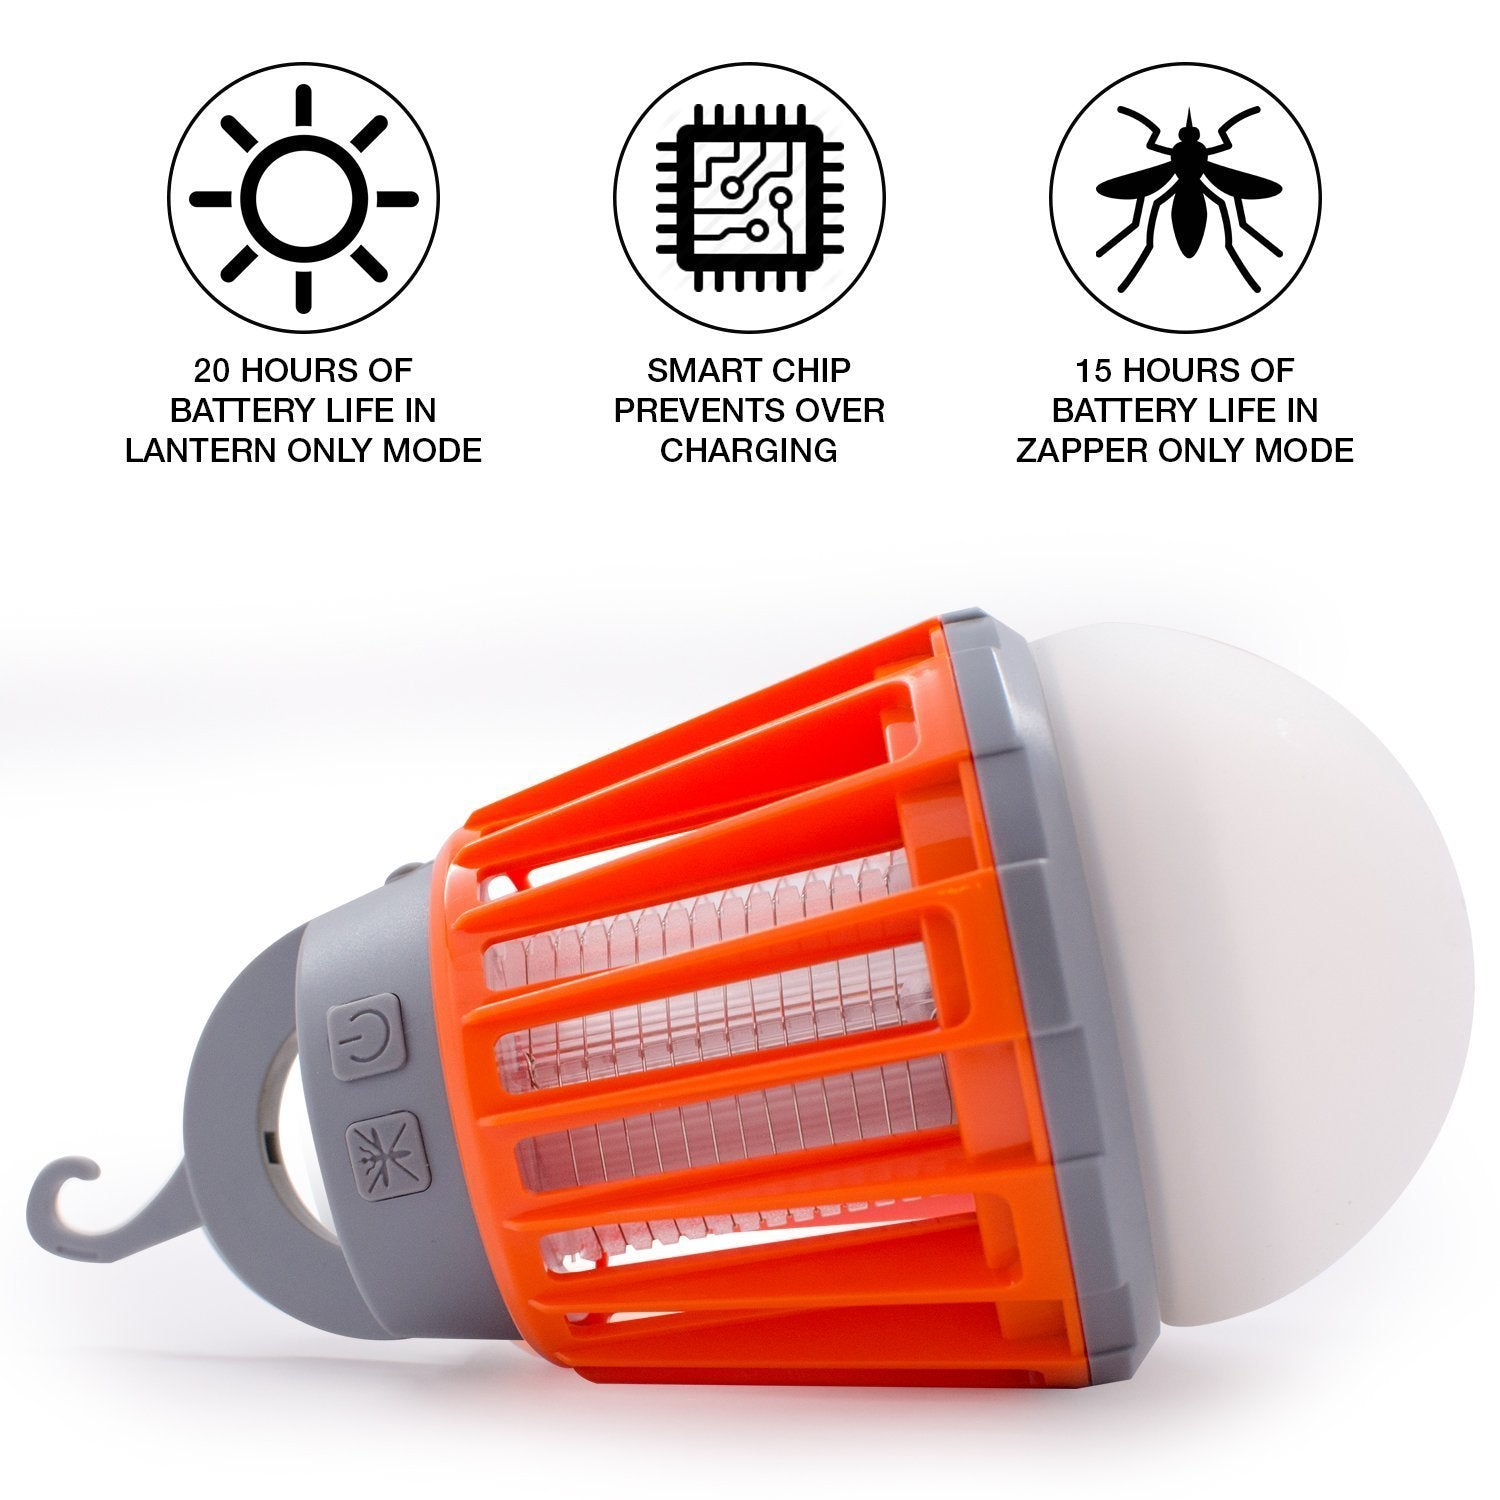 2-in-1 Mosquito Killer Camping Lantern - Waterproof Mosquito Repellent Light Bulb